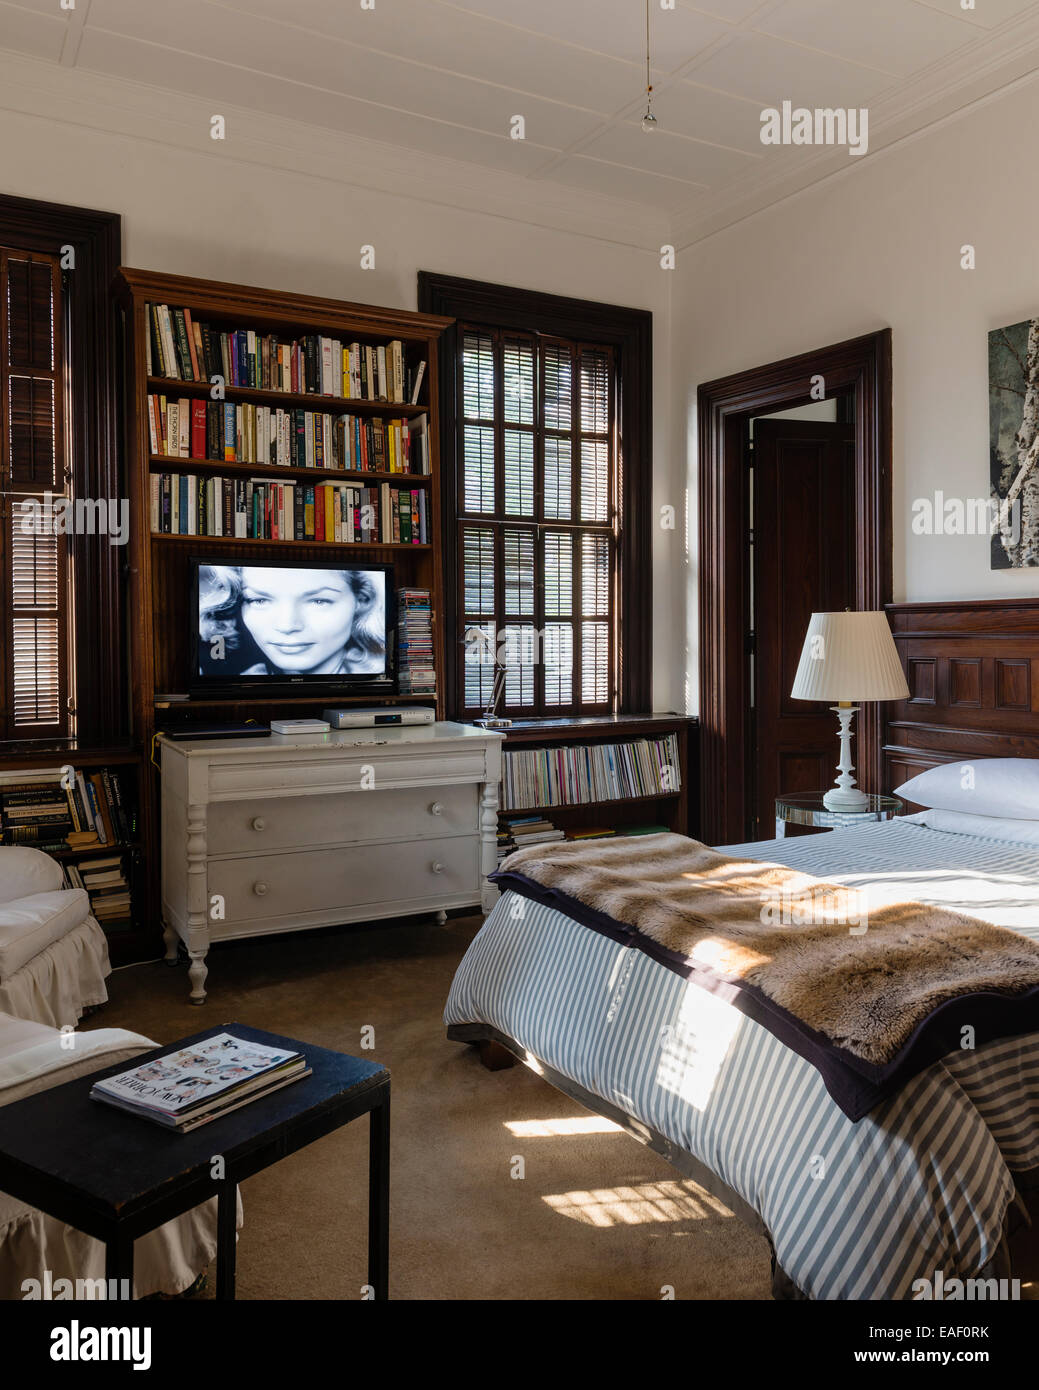 Flat screen tv above Swedish style chest of drawers in bedroom with ...